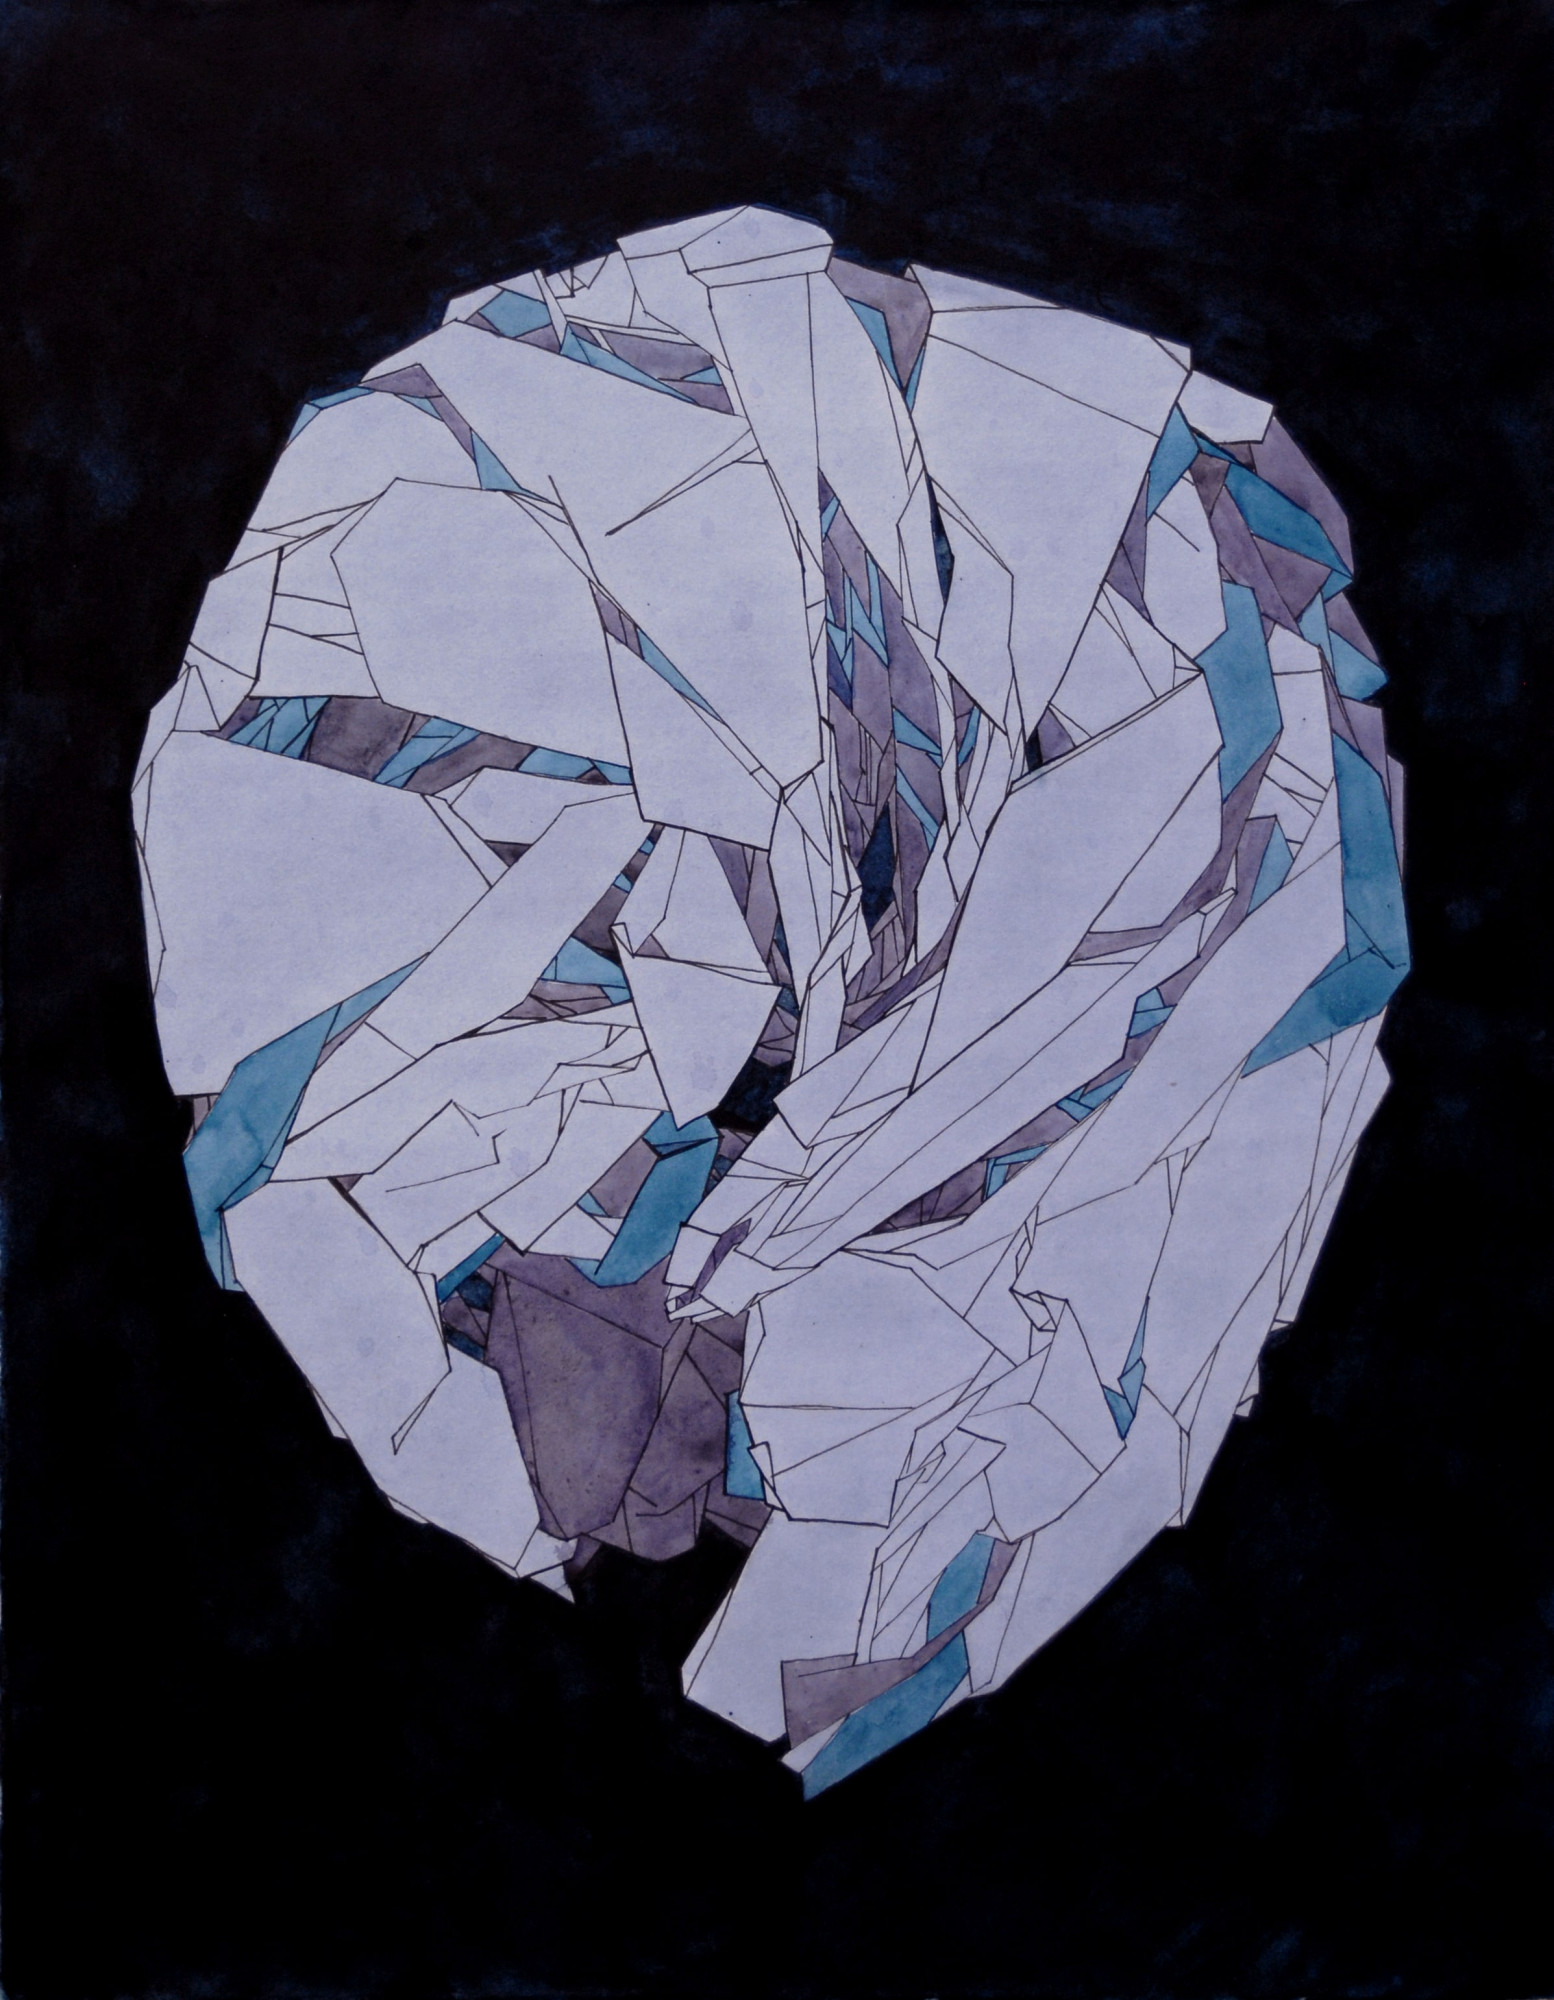 Kami no Yama (Paper Mountain), 2014. Crumpled paper serves as an image of compressing information without a possibility of restoring it